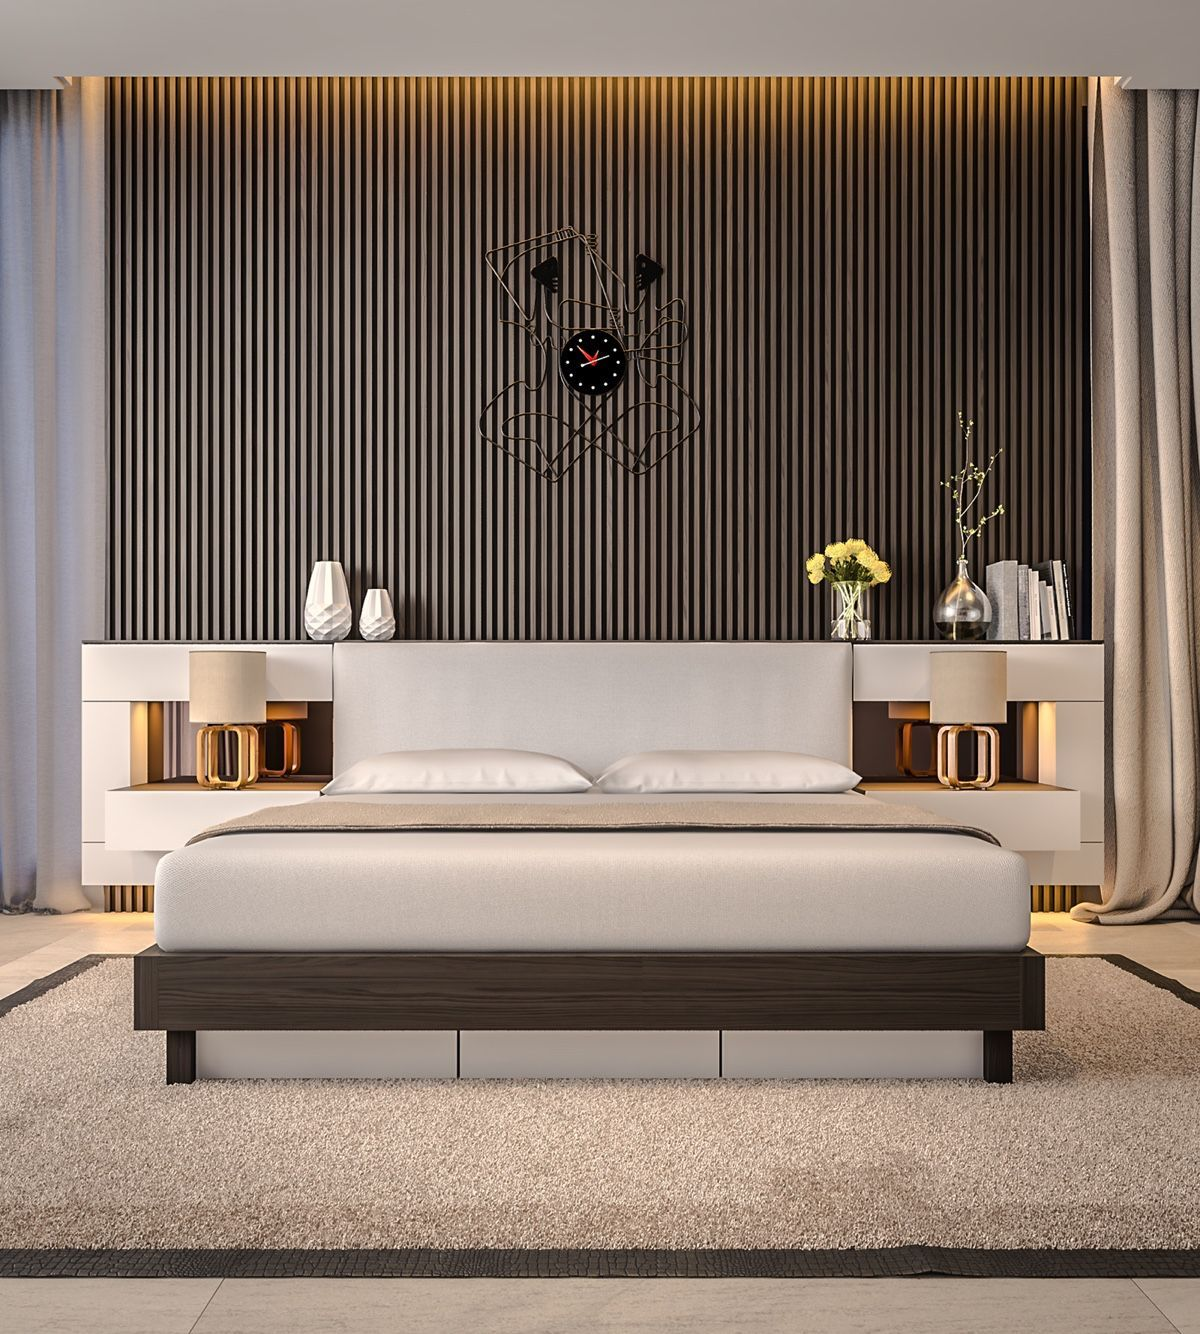 3 types of cool bedroom designs which use slats for accent walls